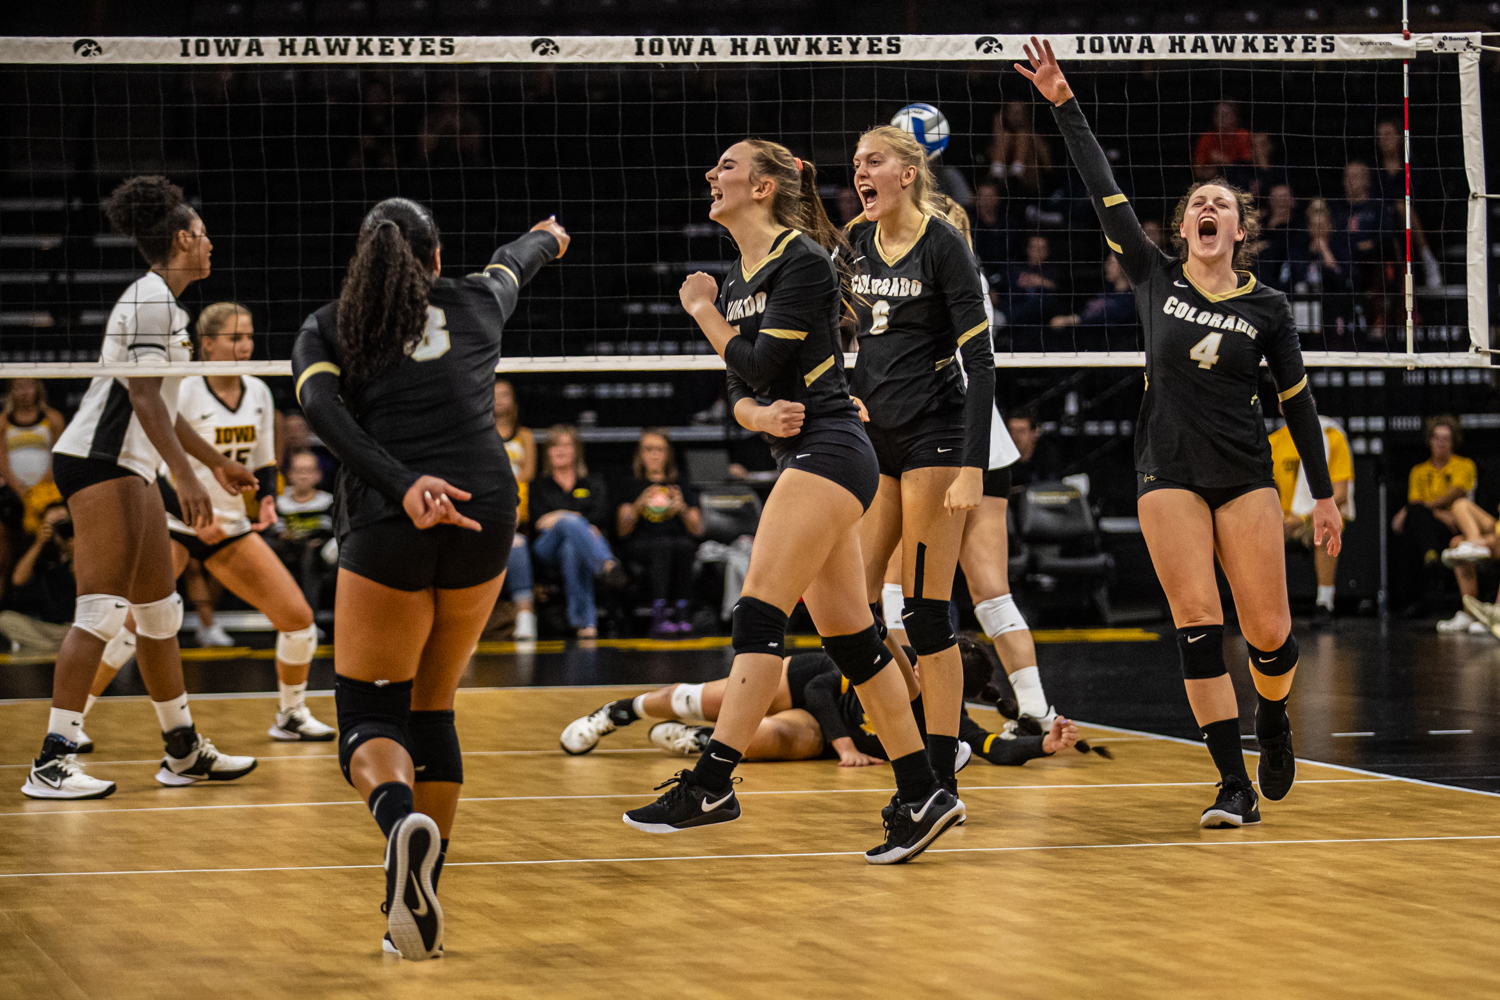 Colorado+players+celebrate+a+point+during+a+volleyball+match+between+Iowa+and+Colorado+in+Carver-Hawkeye+Arena+on+Friday%2C+September+6%2C+2019.+The+Hawkeyes+dropped+their+season+opener+to+the+Buffaloes%2C+3-0.